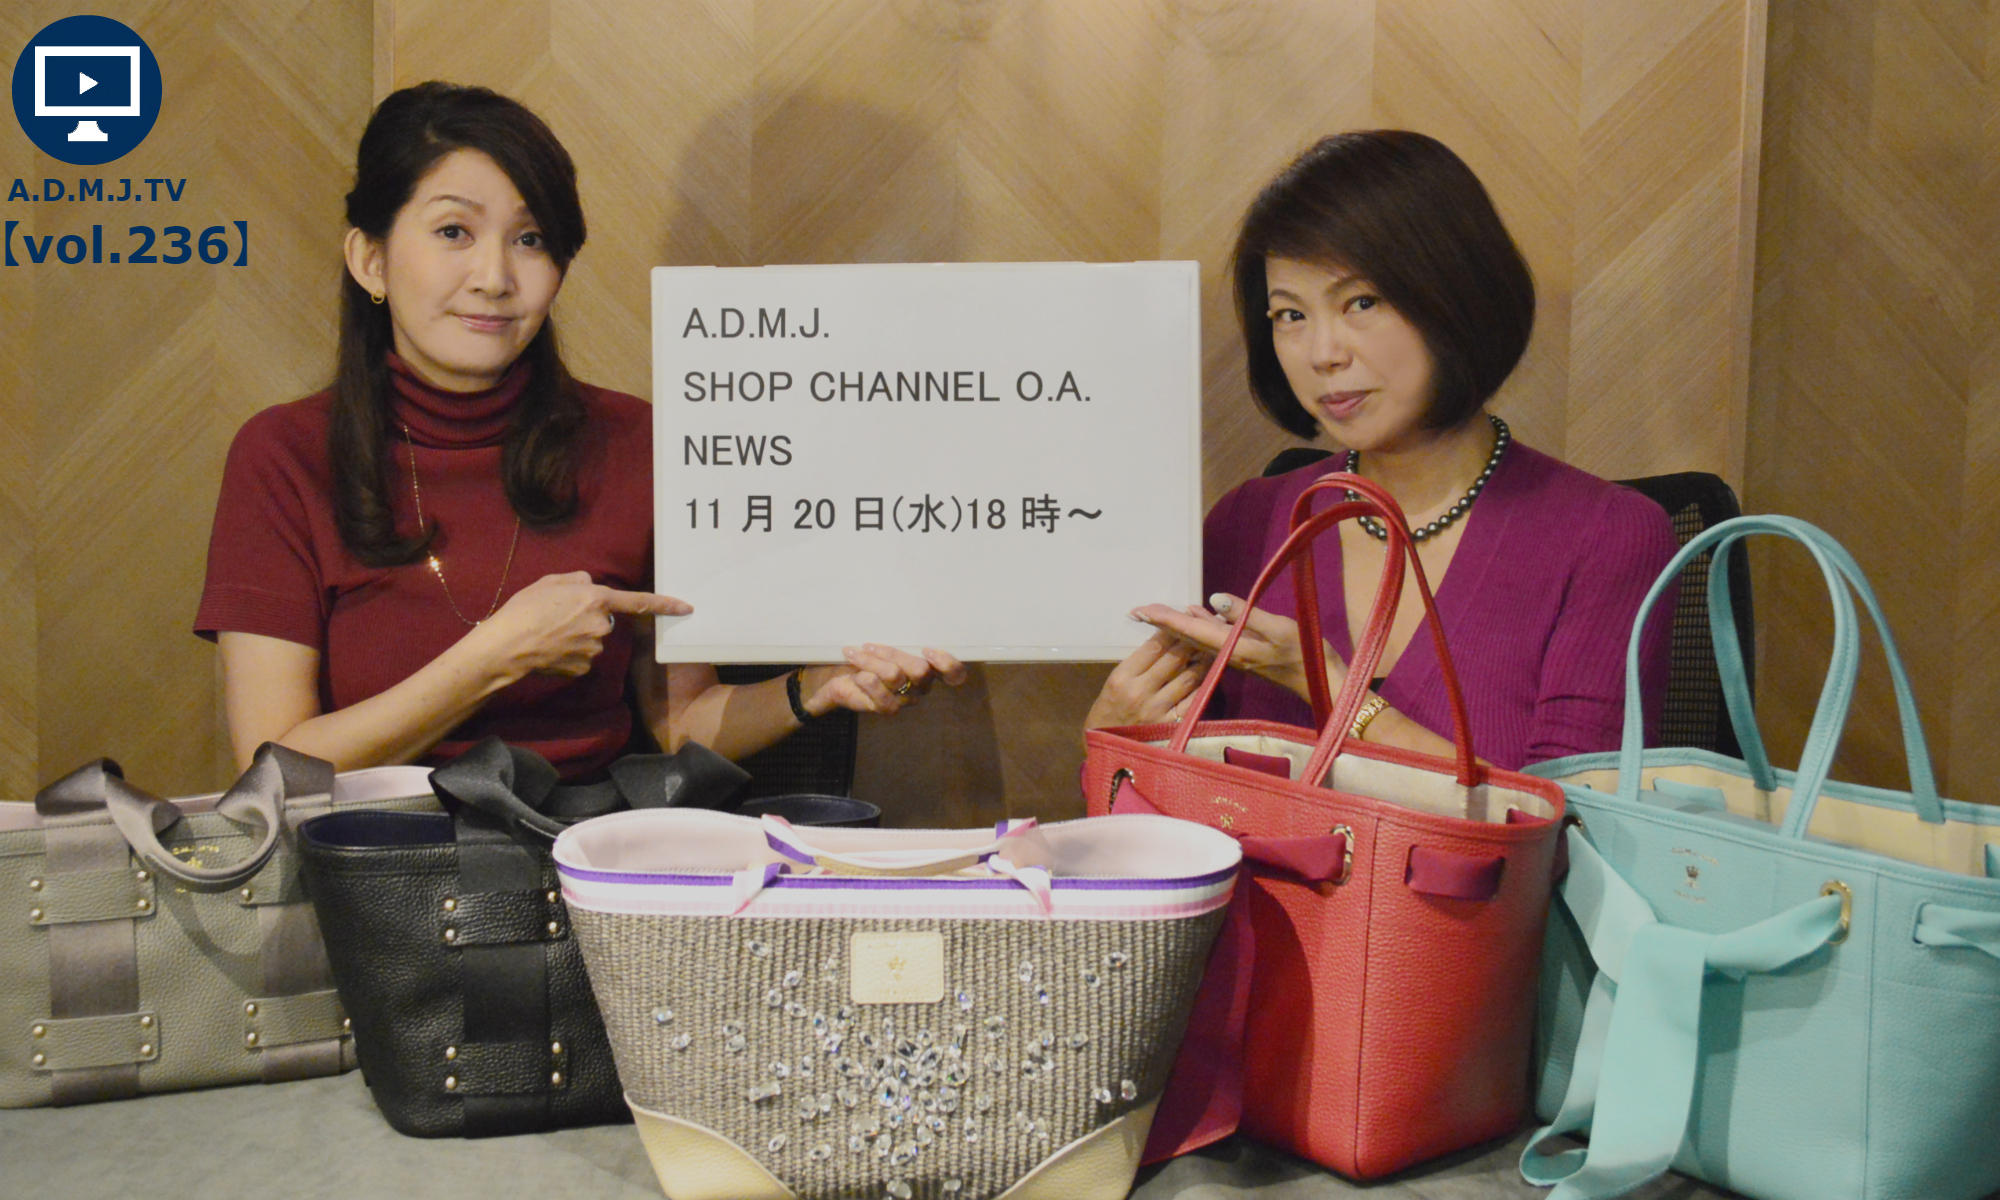 A.D.M.J.TV【vol.236】11月20日(水)18時~SHOP CHANNEL O.A.